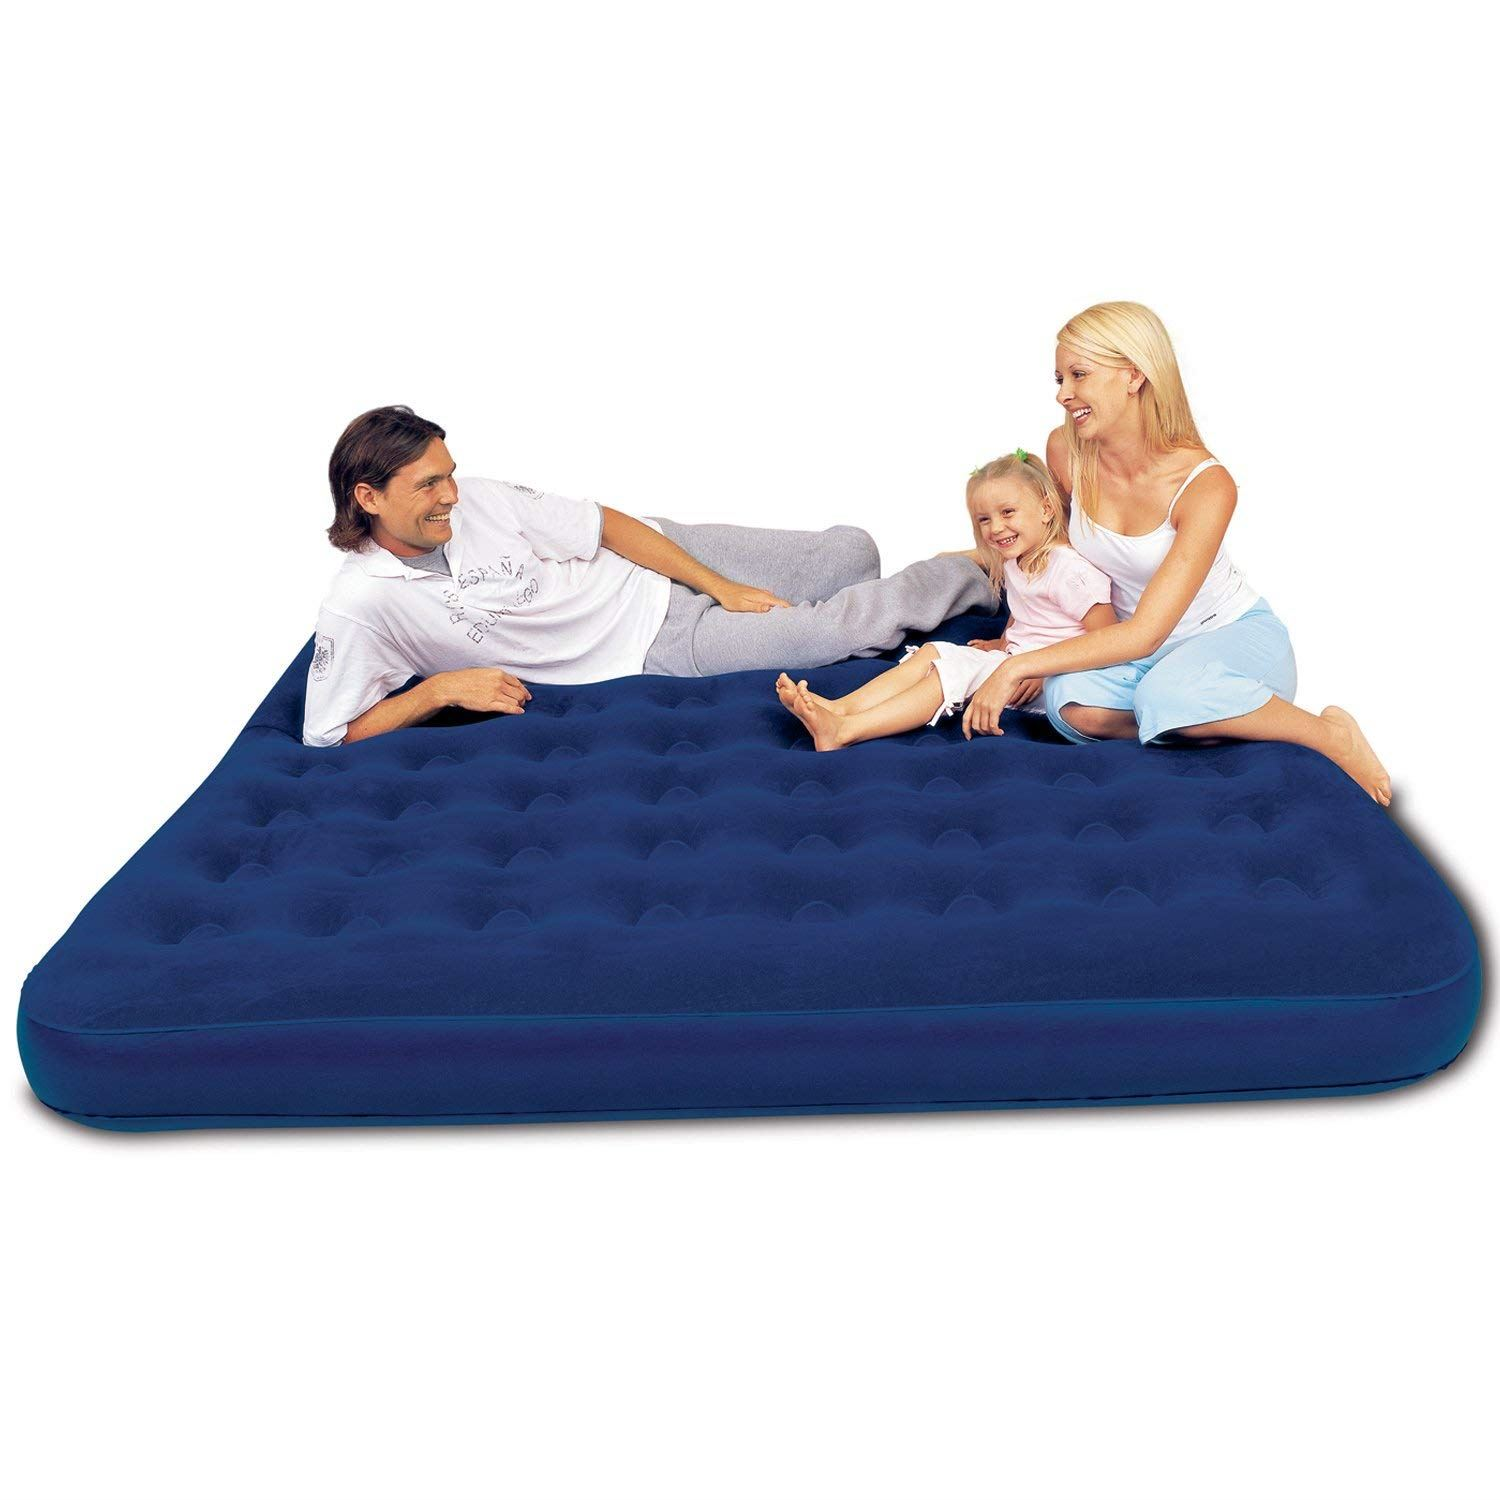 Unibos Single Airbed Comfort Inflatable Air Bed Indoor Outdoors Camping Sleepover Air Mattress In-Built Pump and Pillow Brand New